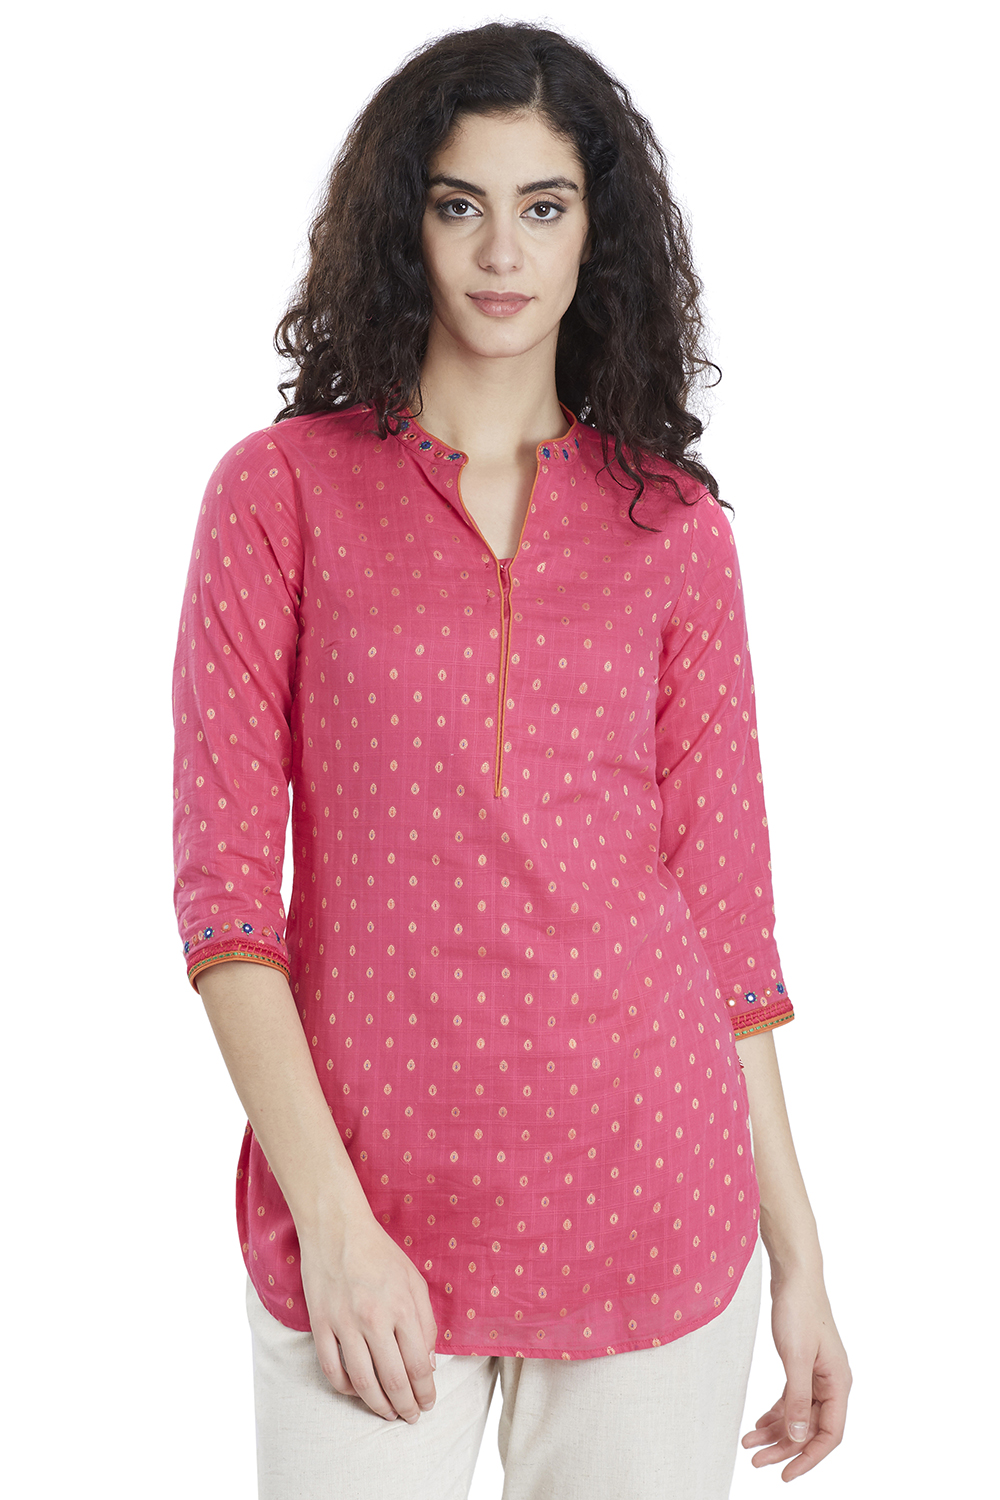 a4a50a1f8e1 Buy Online Fuchsia Straight Cotton Kurti for Women   Girls at Best Prices  in Biba India-FOLKREP1459